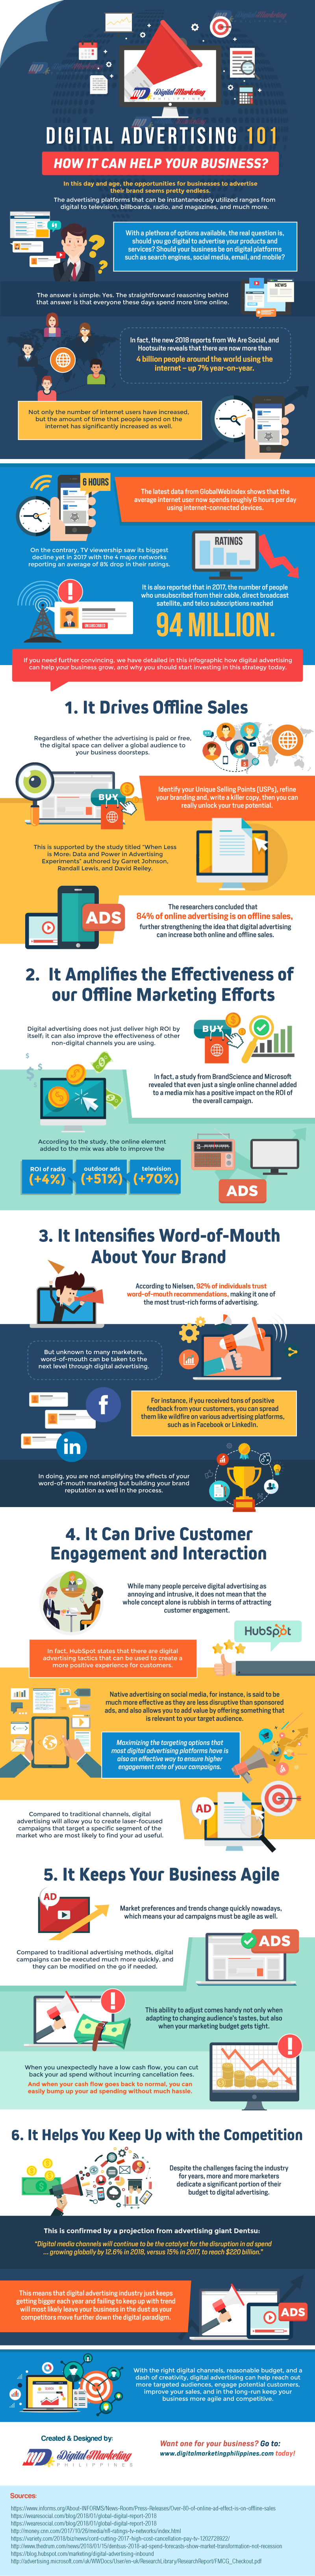 Digital Advertising 101: How It Can Help Your Business? #Infographic